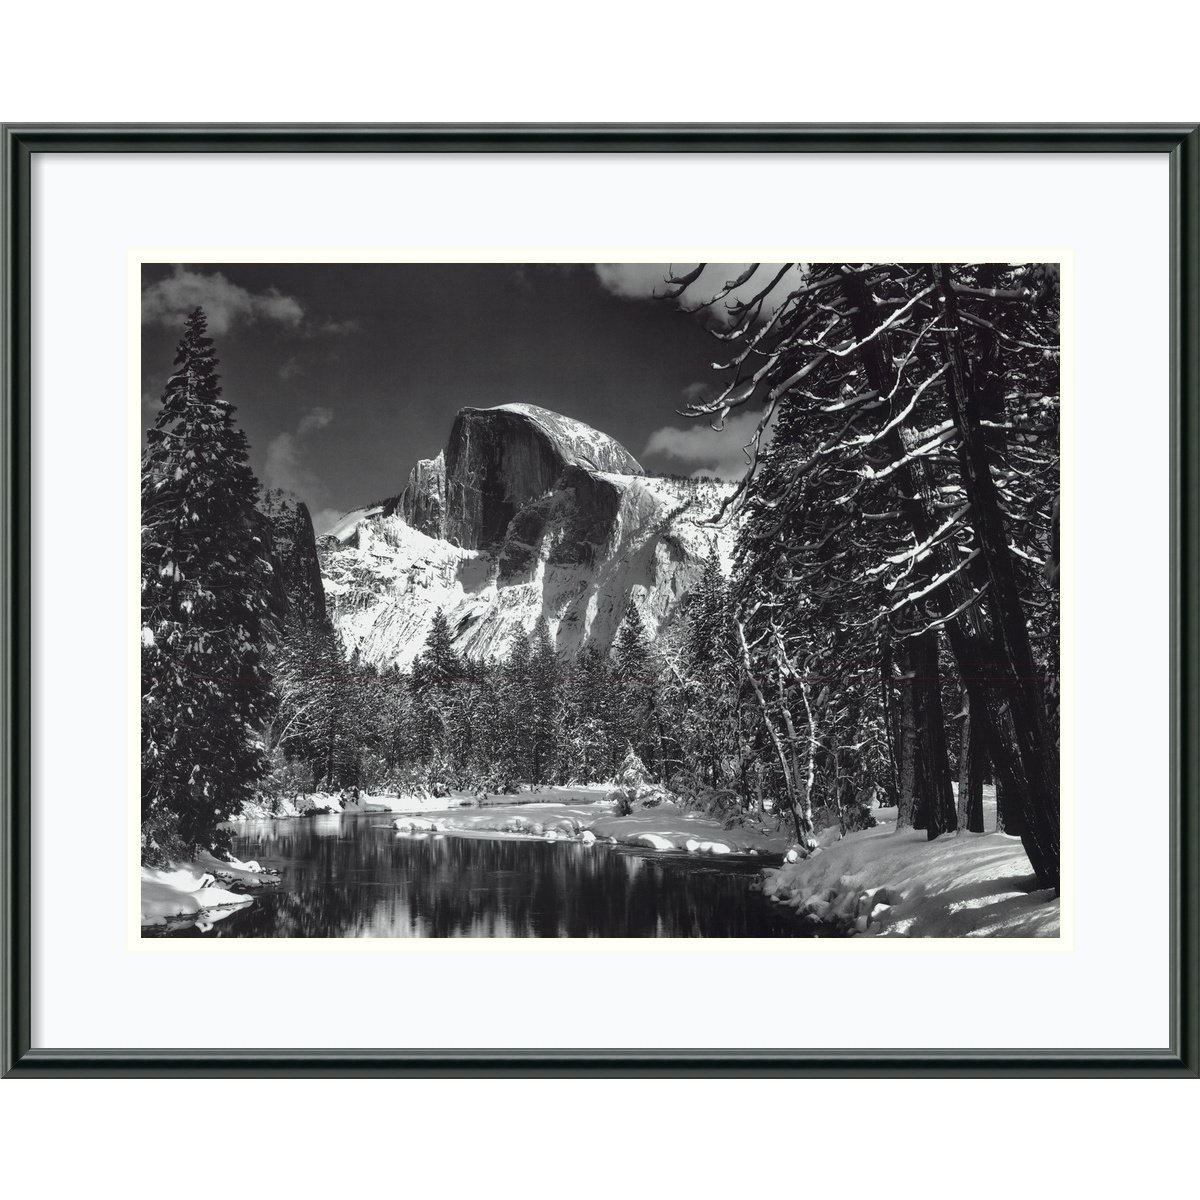 Framed Art Print, 'Half Dome, Winter - Yosemite National Park, 1938' by Ansel Adams: Outer Size 29 x 23'' by Amanti Art